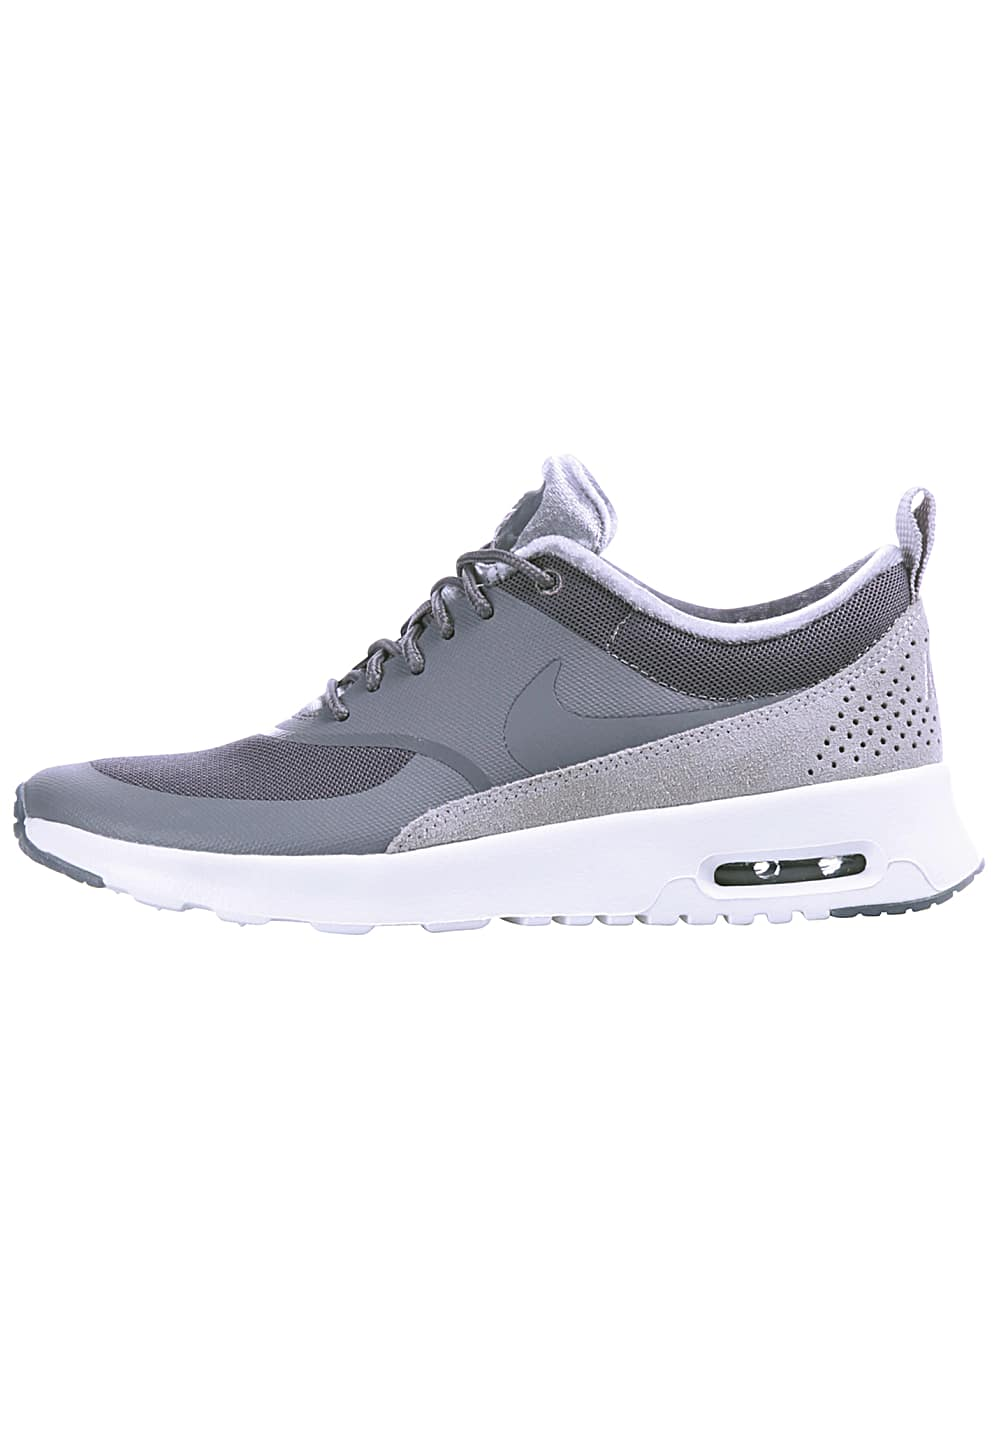 differently official images new high quality NIKE SPORTSWEAR Air Max Thea LX - Sneakers for Women - Grey